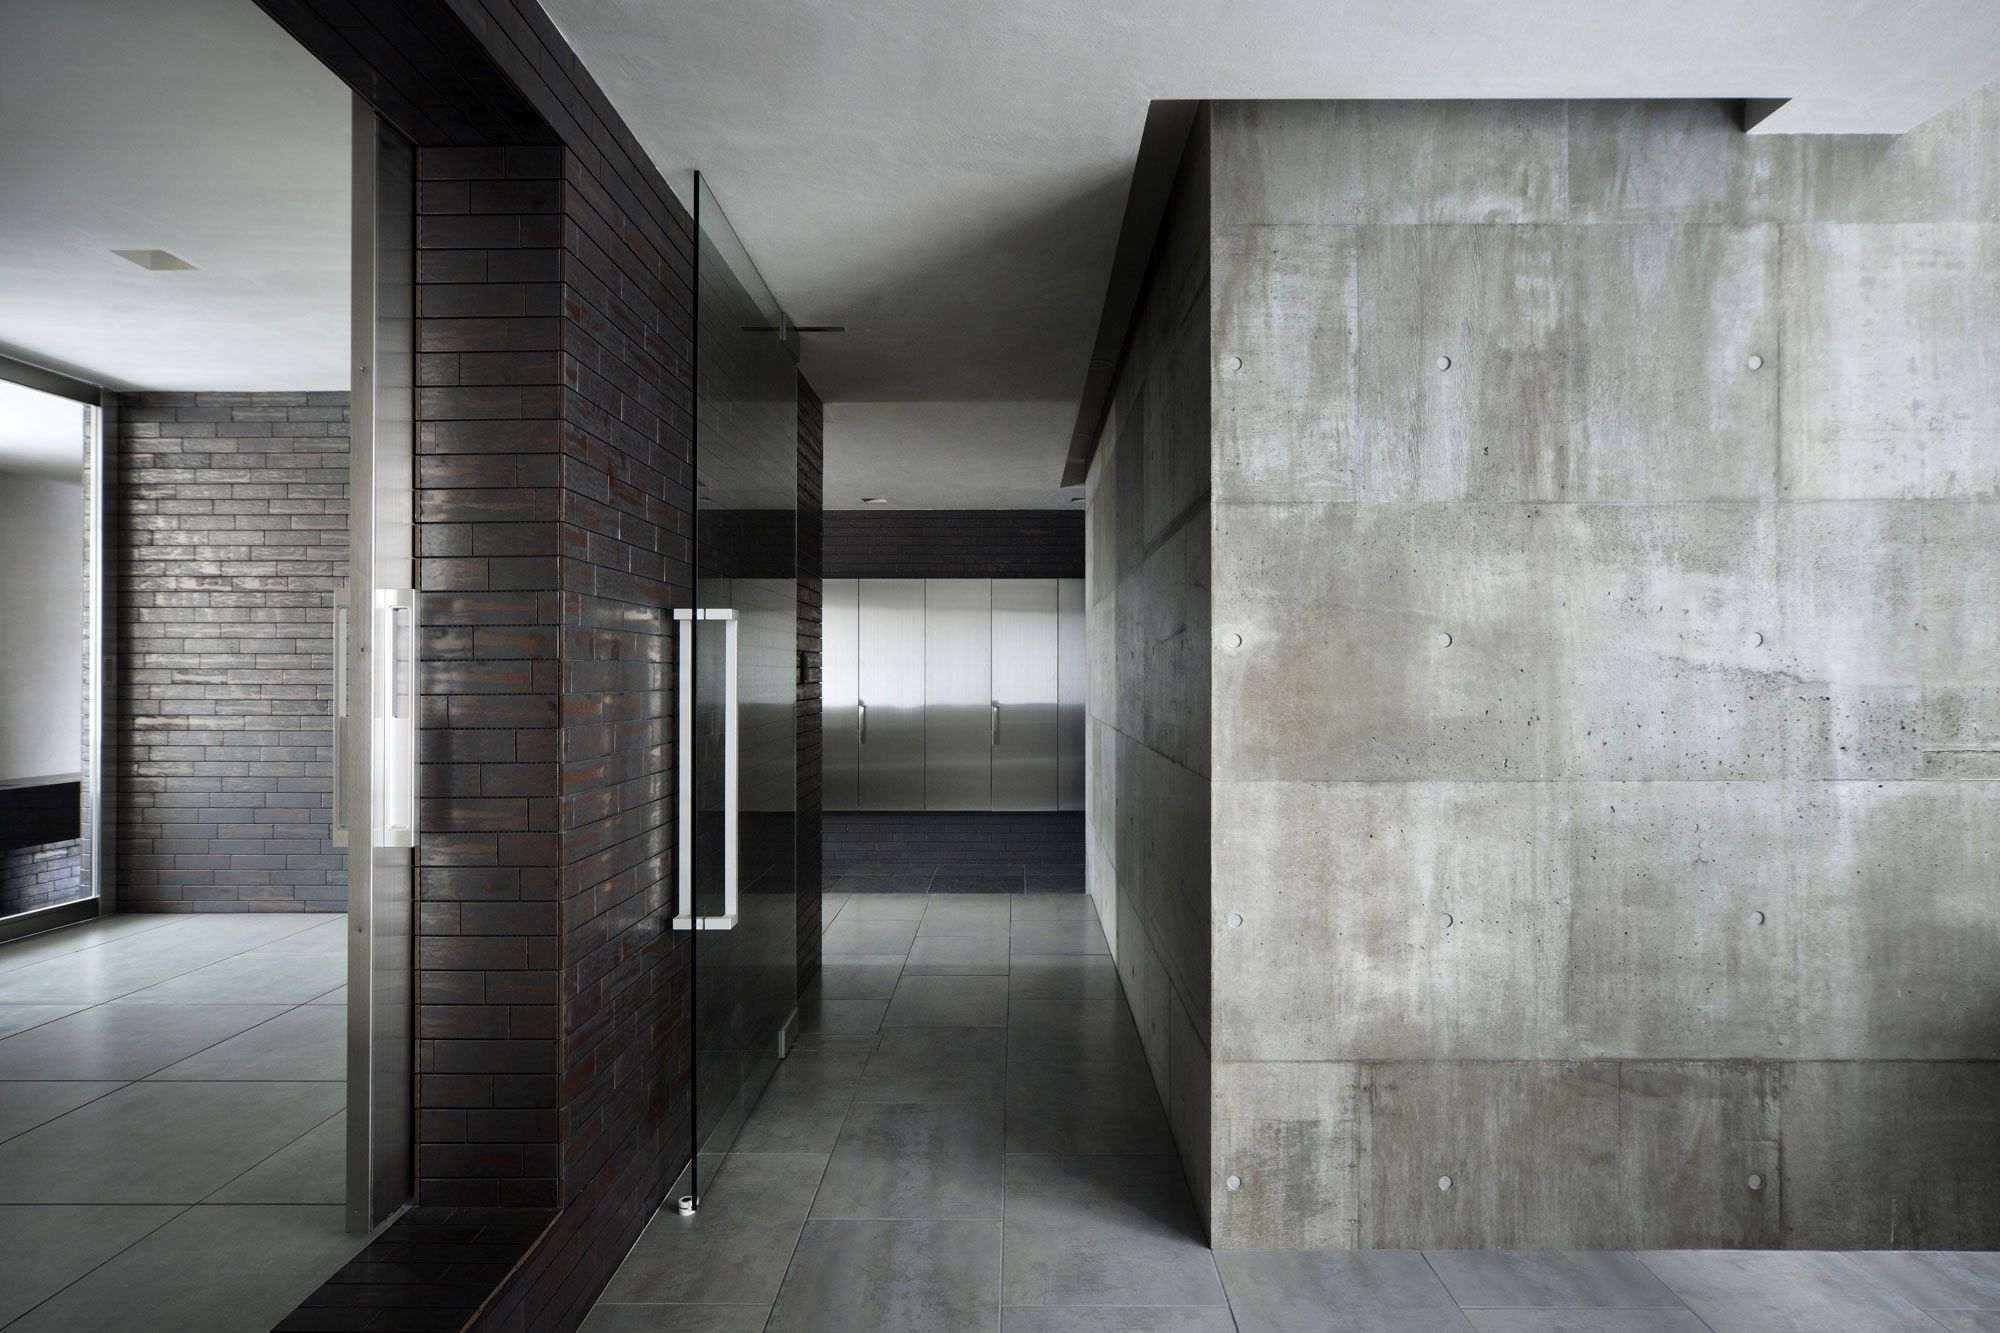 Concrete Interior Walls Office Home Of And Finishes Awesome Dark Scheme For Diy Brick Wall Design Idea Ex Concrete Interiors Brick Interior Wall Diy Brick Wall